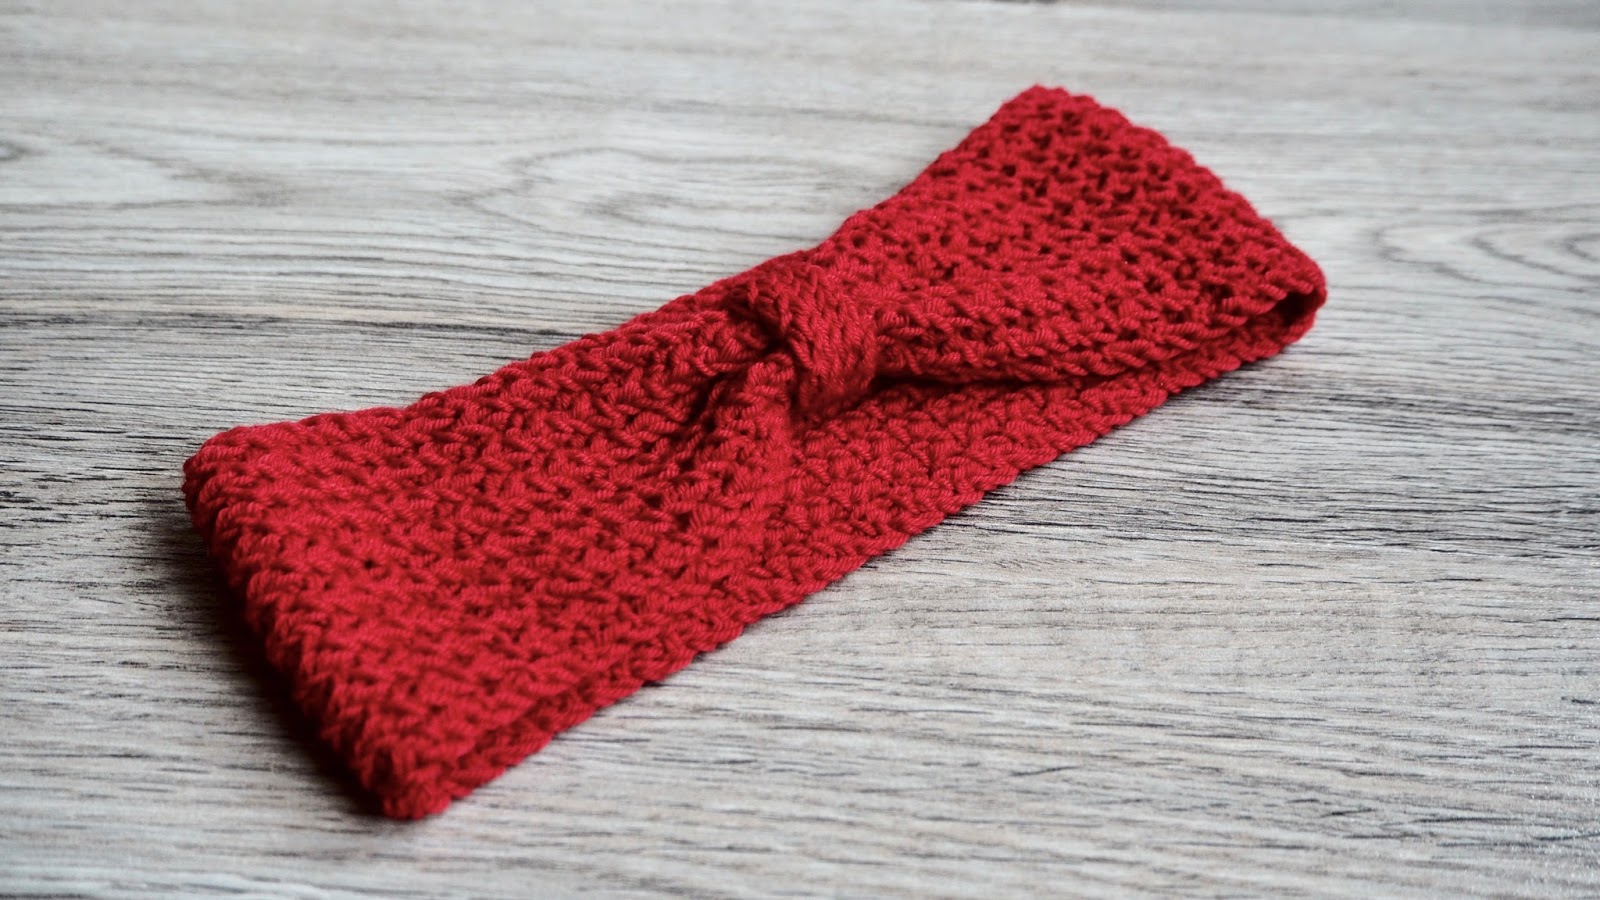 Free knitting pattern for a headband with two strands of yarn